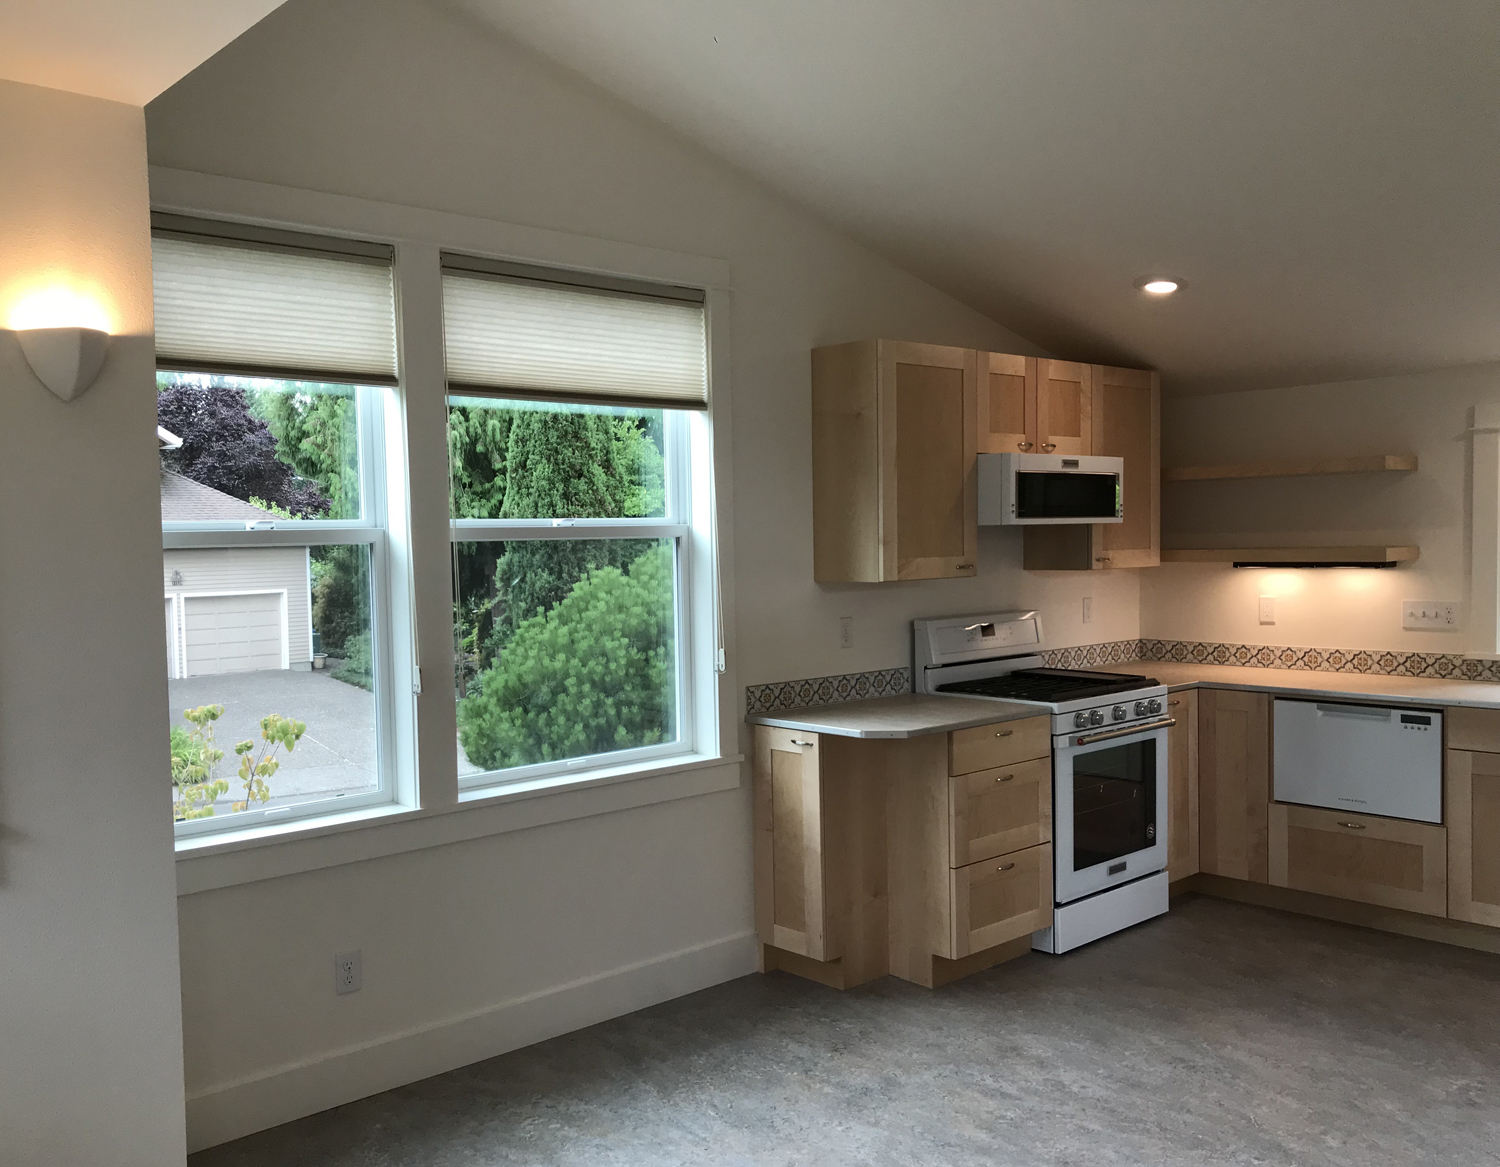 Stove, oven, microwave/vent hood, west facing window.